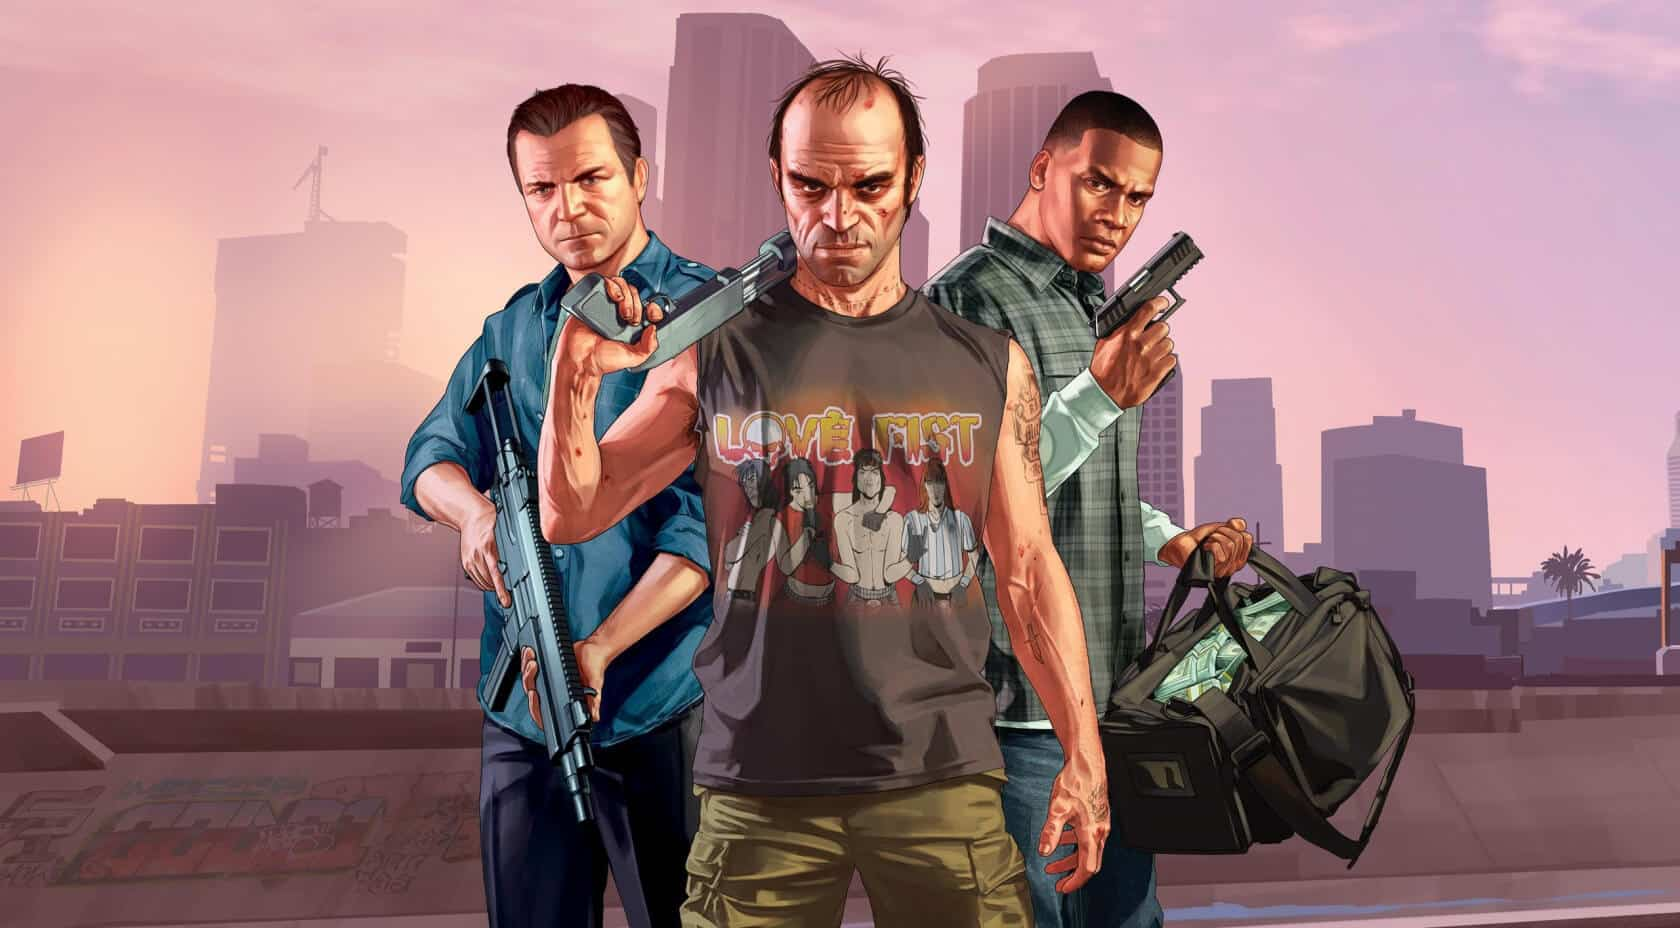 Cara-Install-Game-GTA-5-Final-Version-Apk